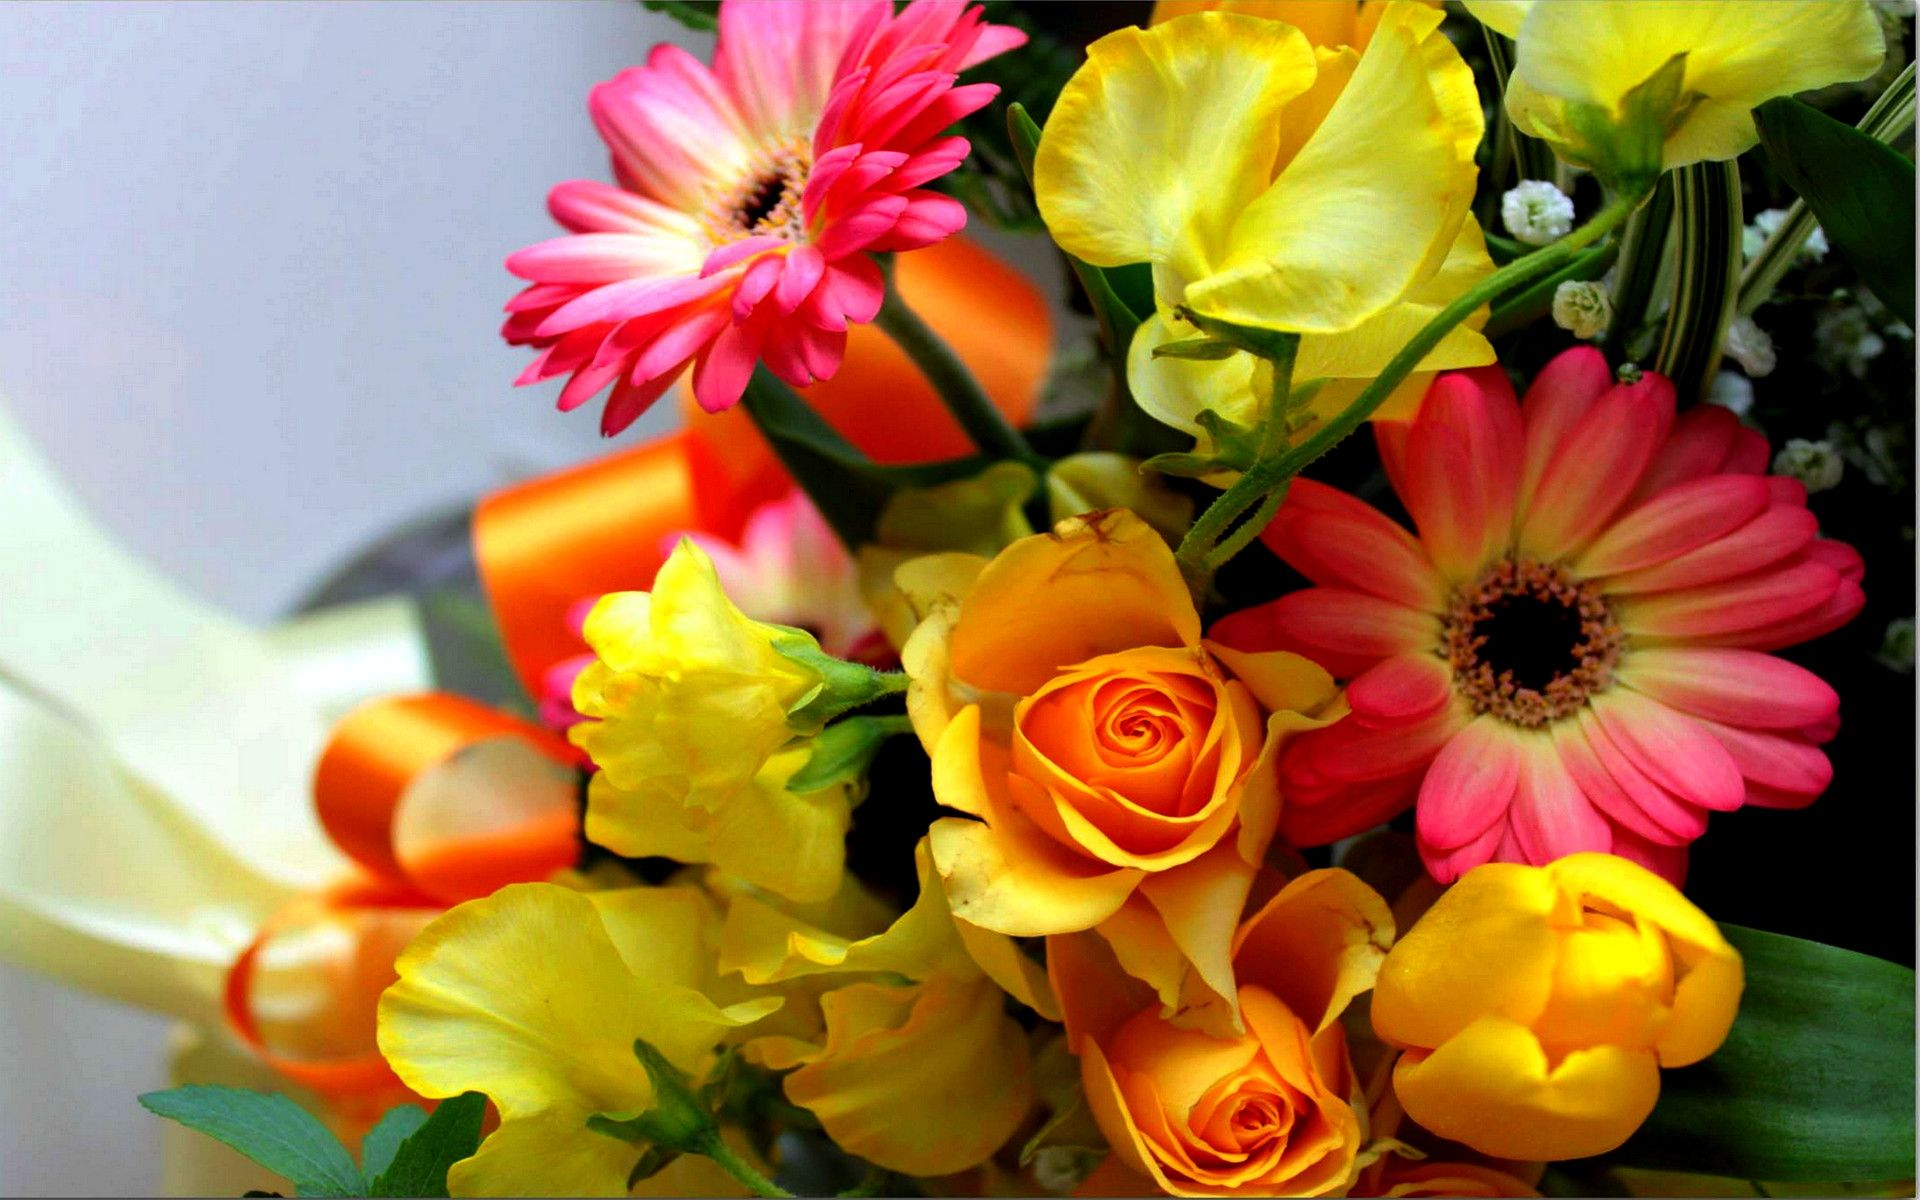 Flower bouquet wallpapers superb. Bunch of flowers images download